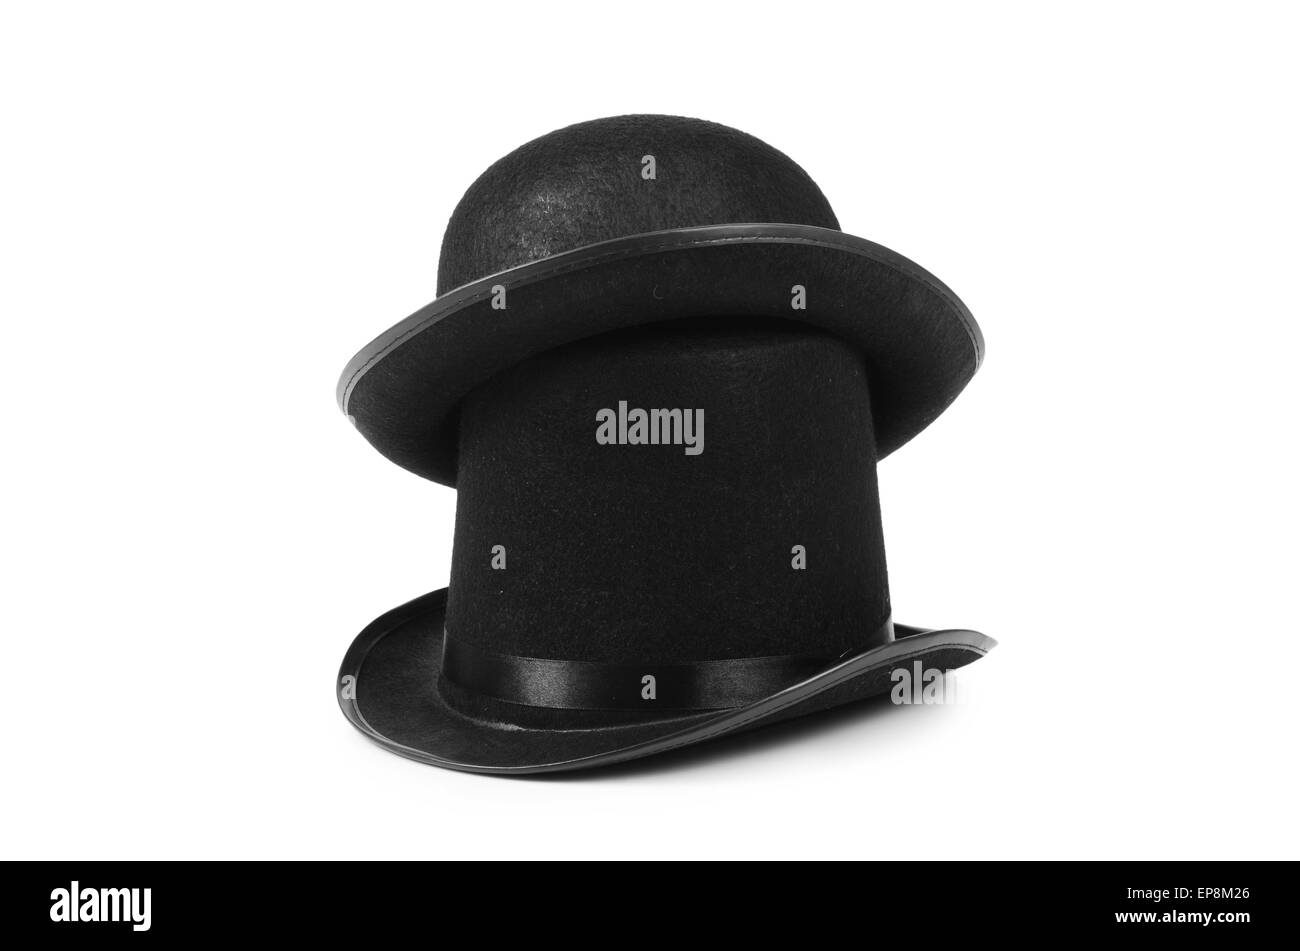 d2b5a62d438 Black Top Hats Black and White Stock Photos   Images - Alamy